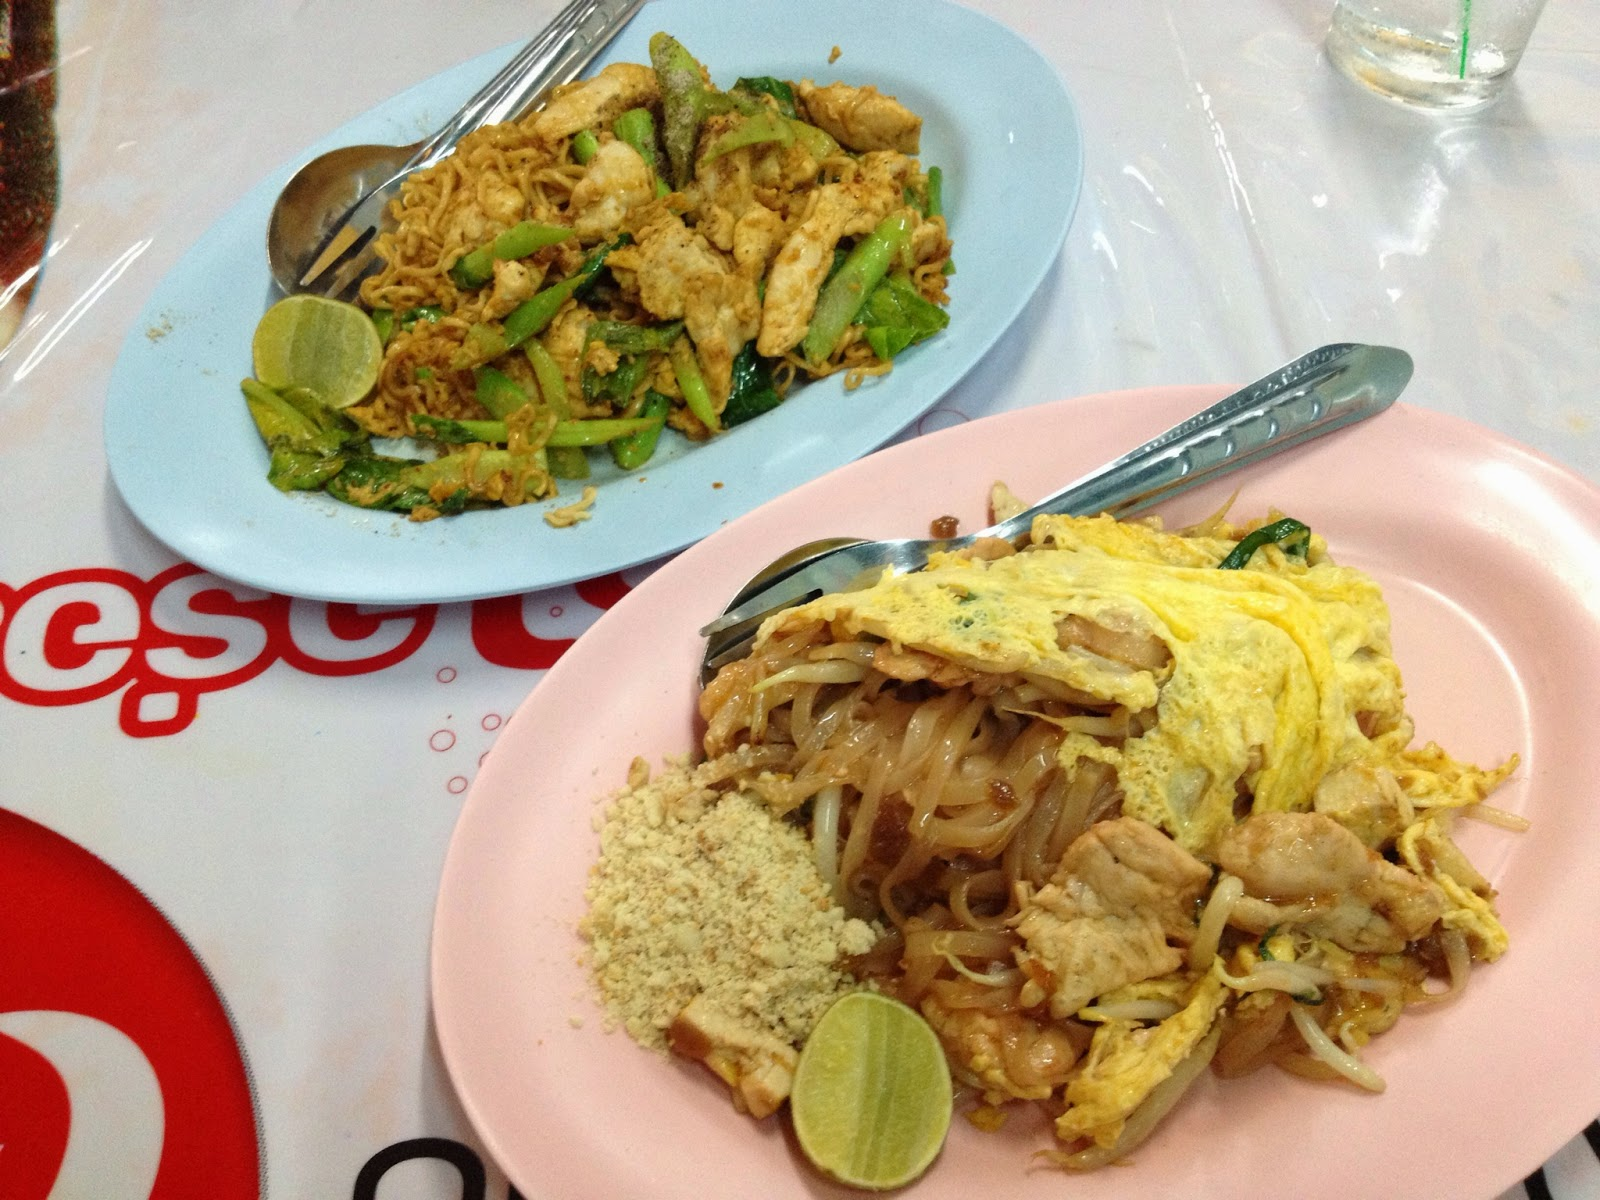 Chiang Mai - Our first meal in Chiang Mai - pad thai and fried mama